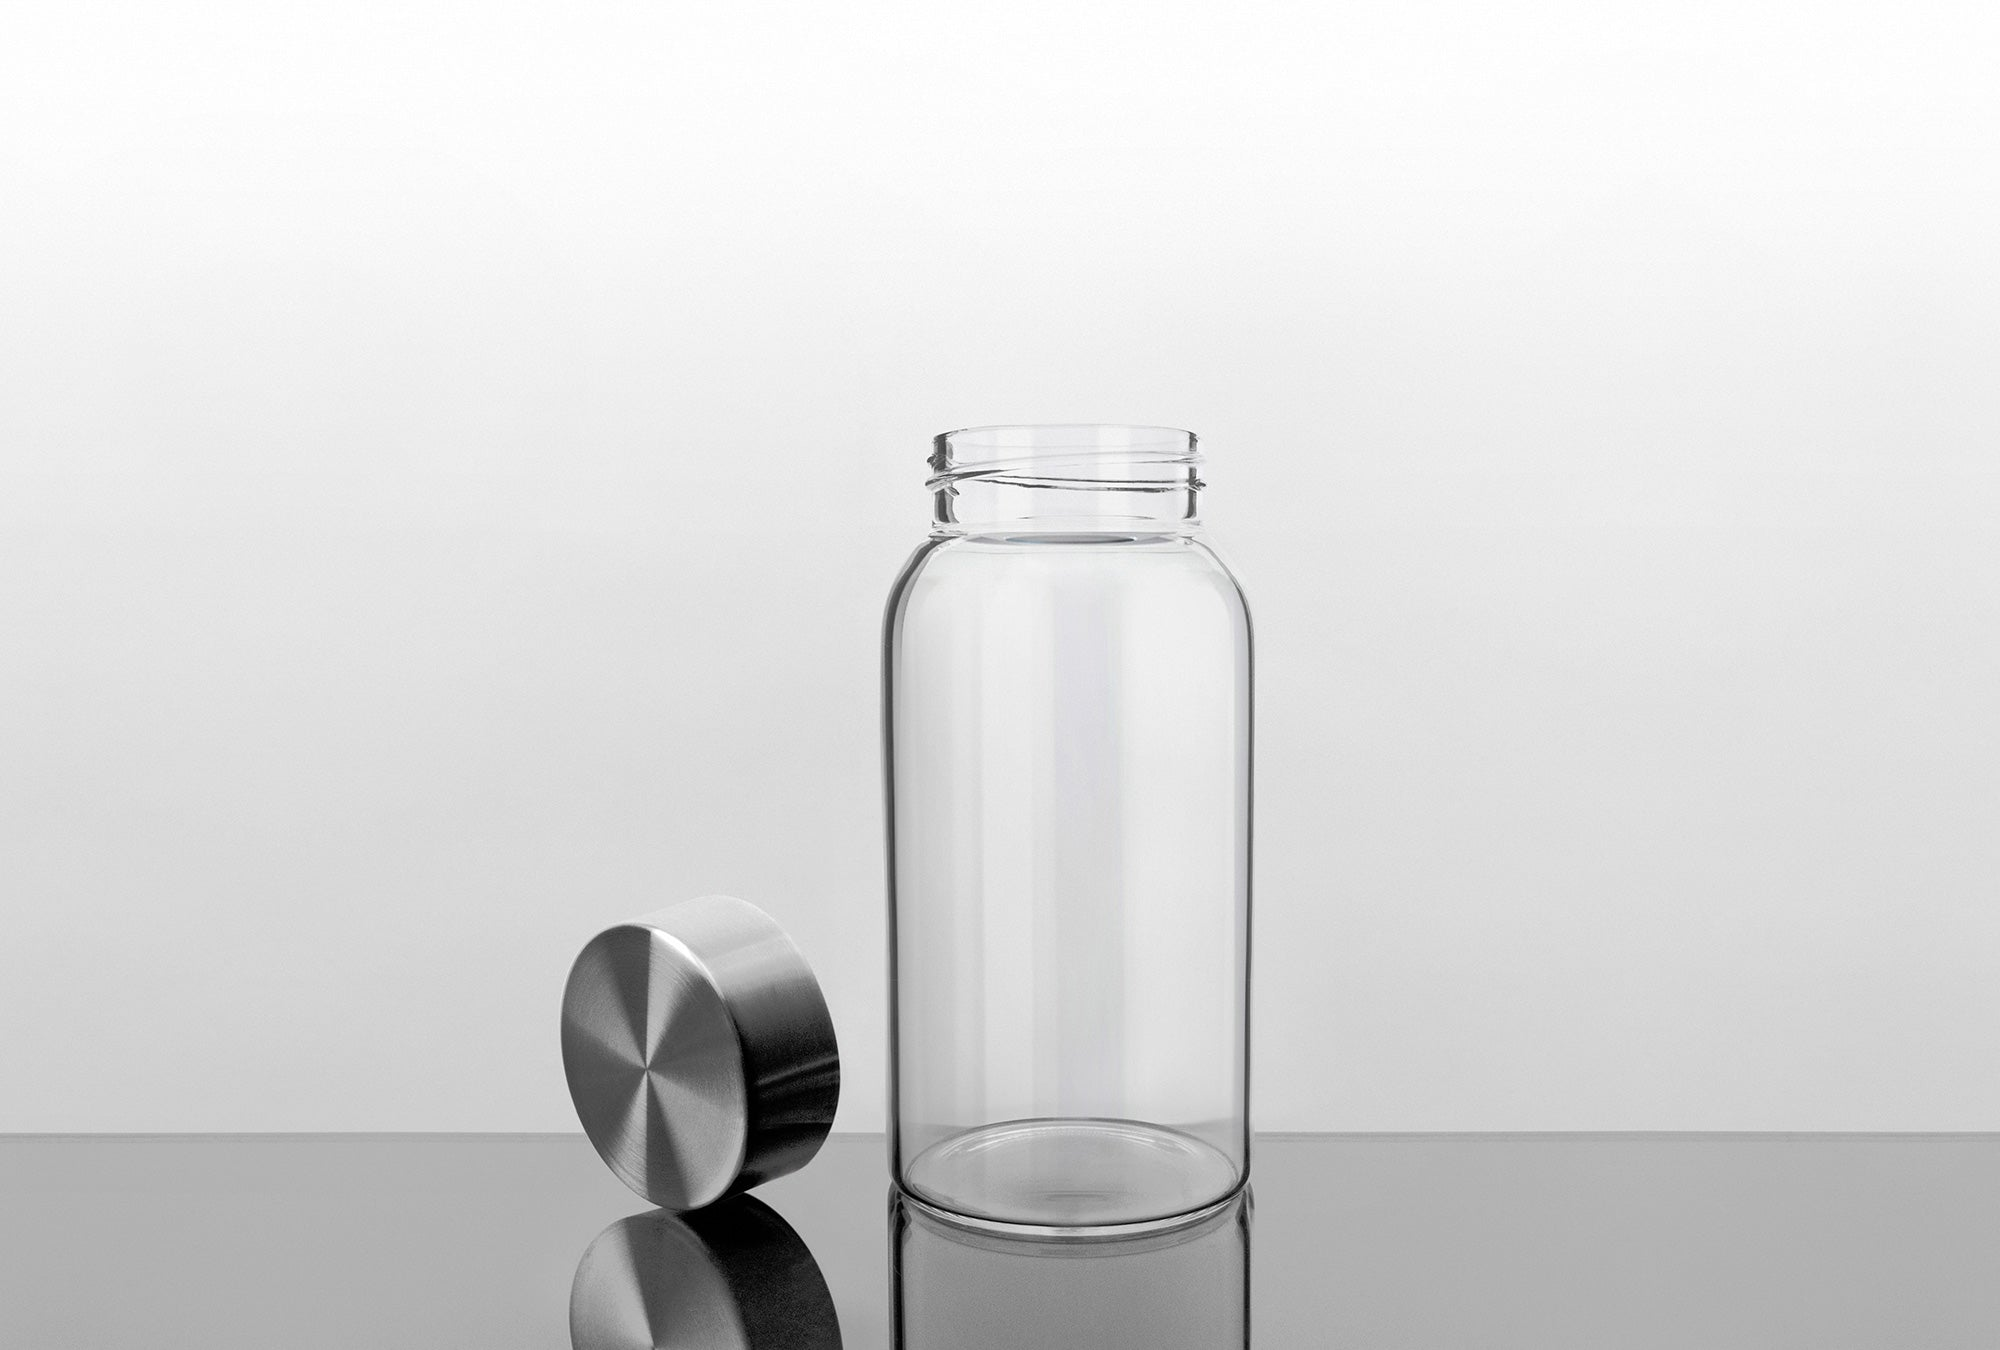 21 oz glass water bottle